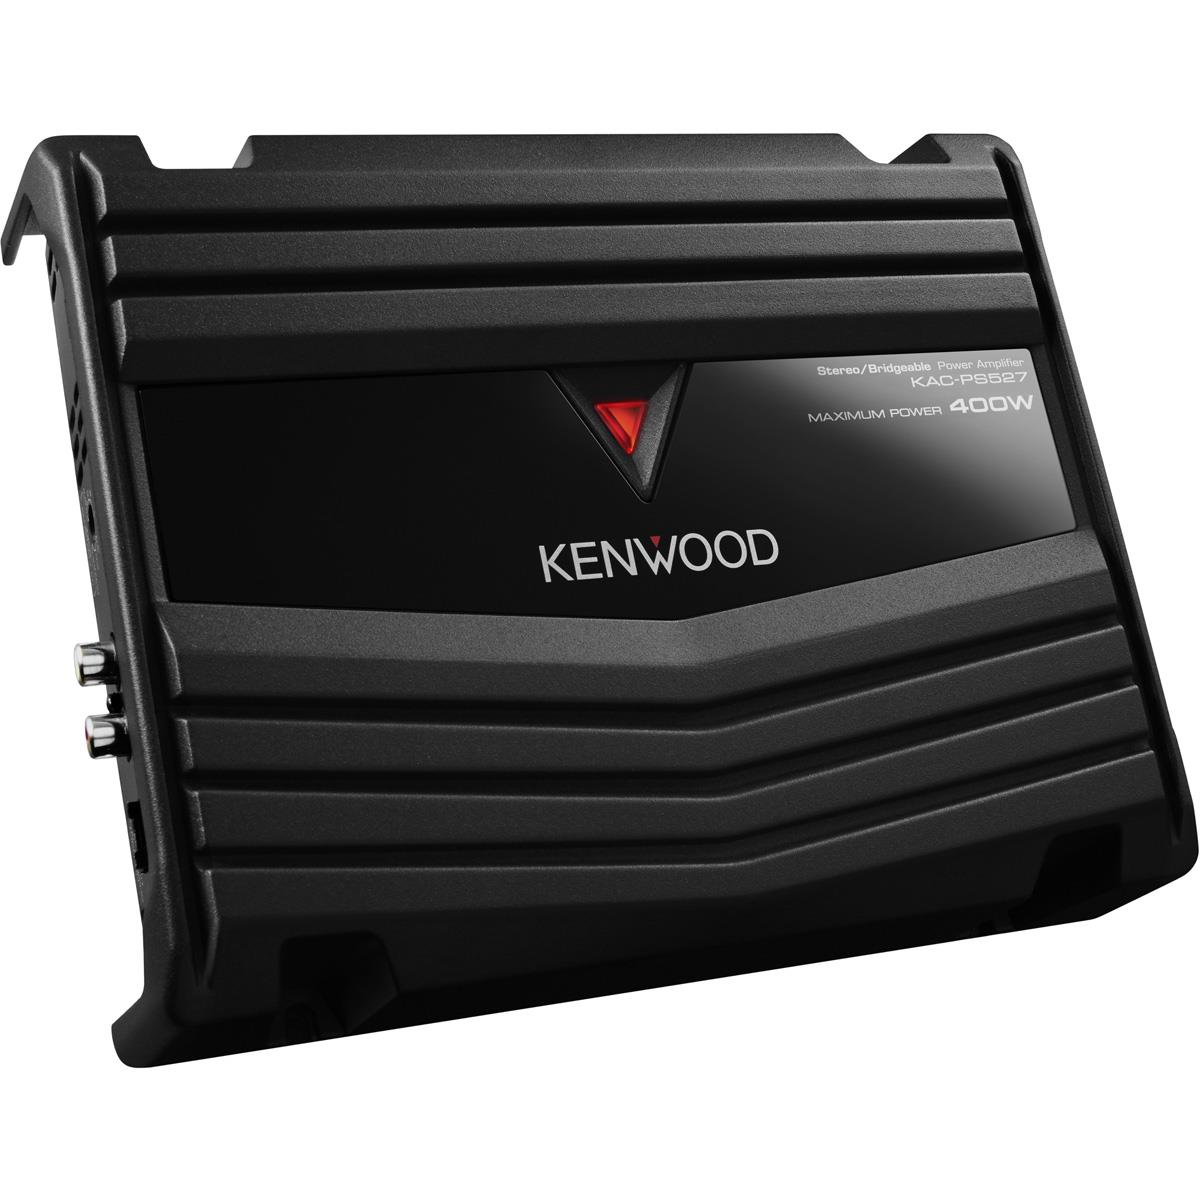 Kenwood KAC-PS527